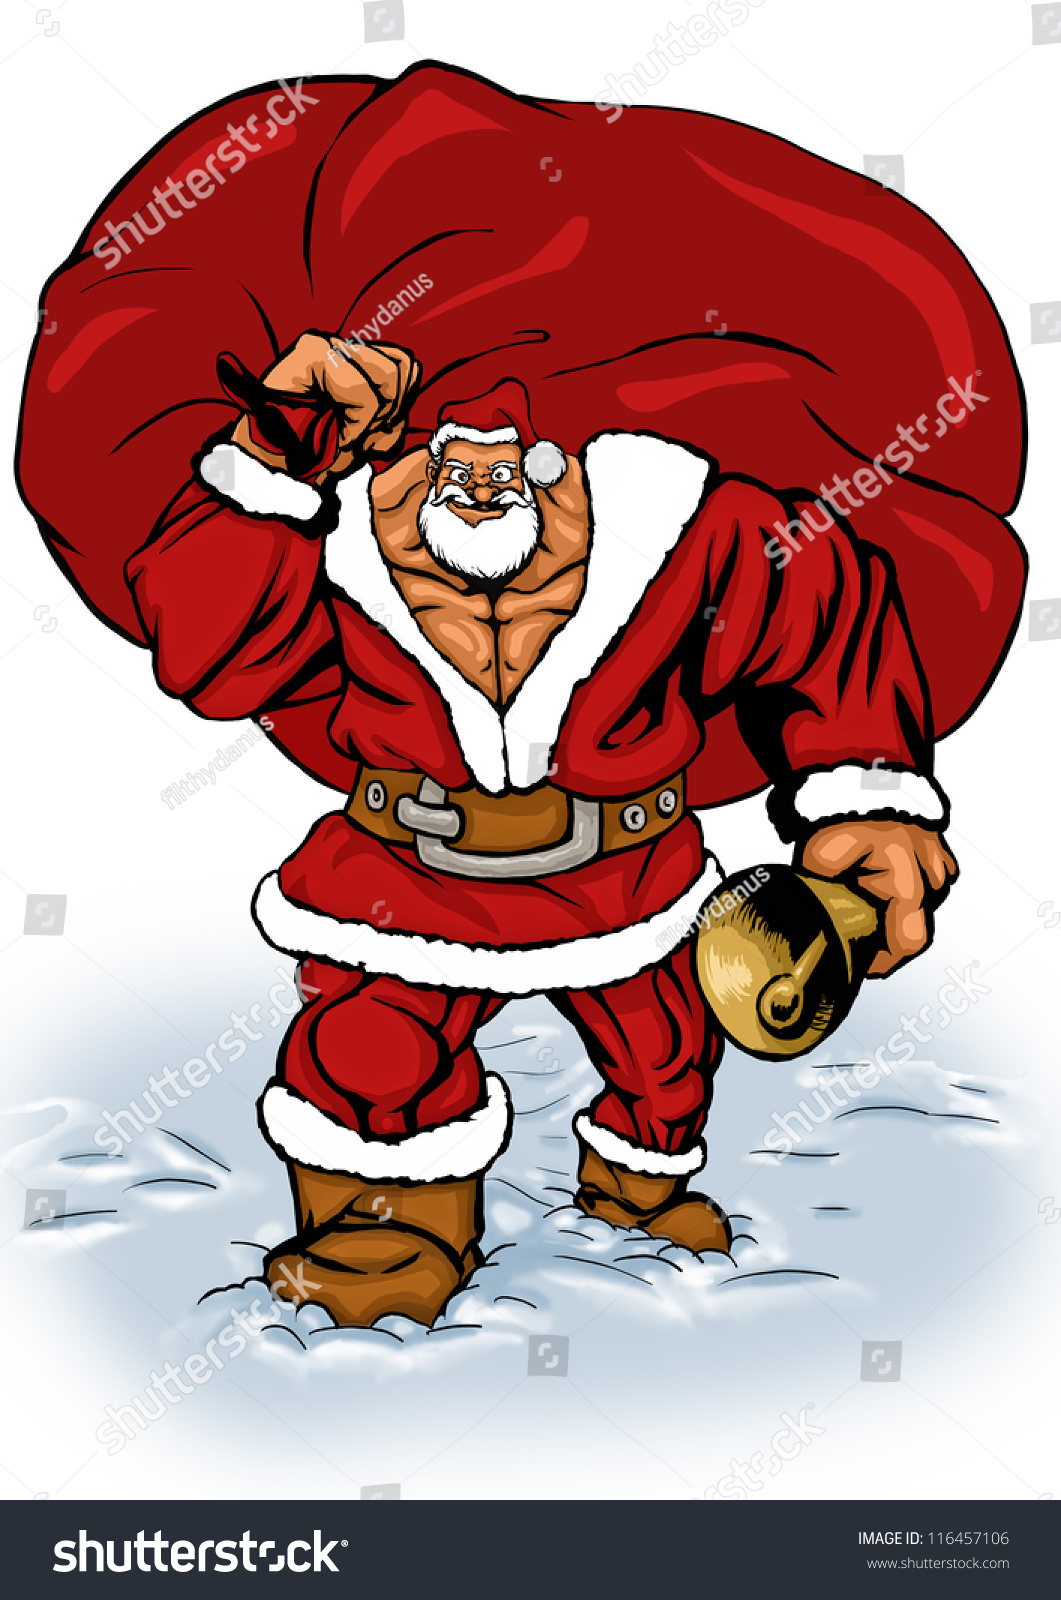 Related keywords suggestions for strong santa